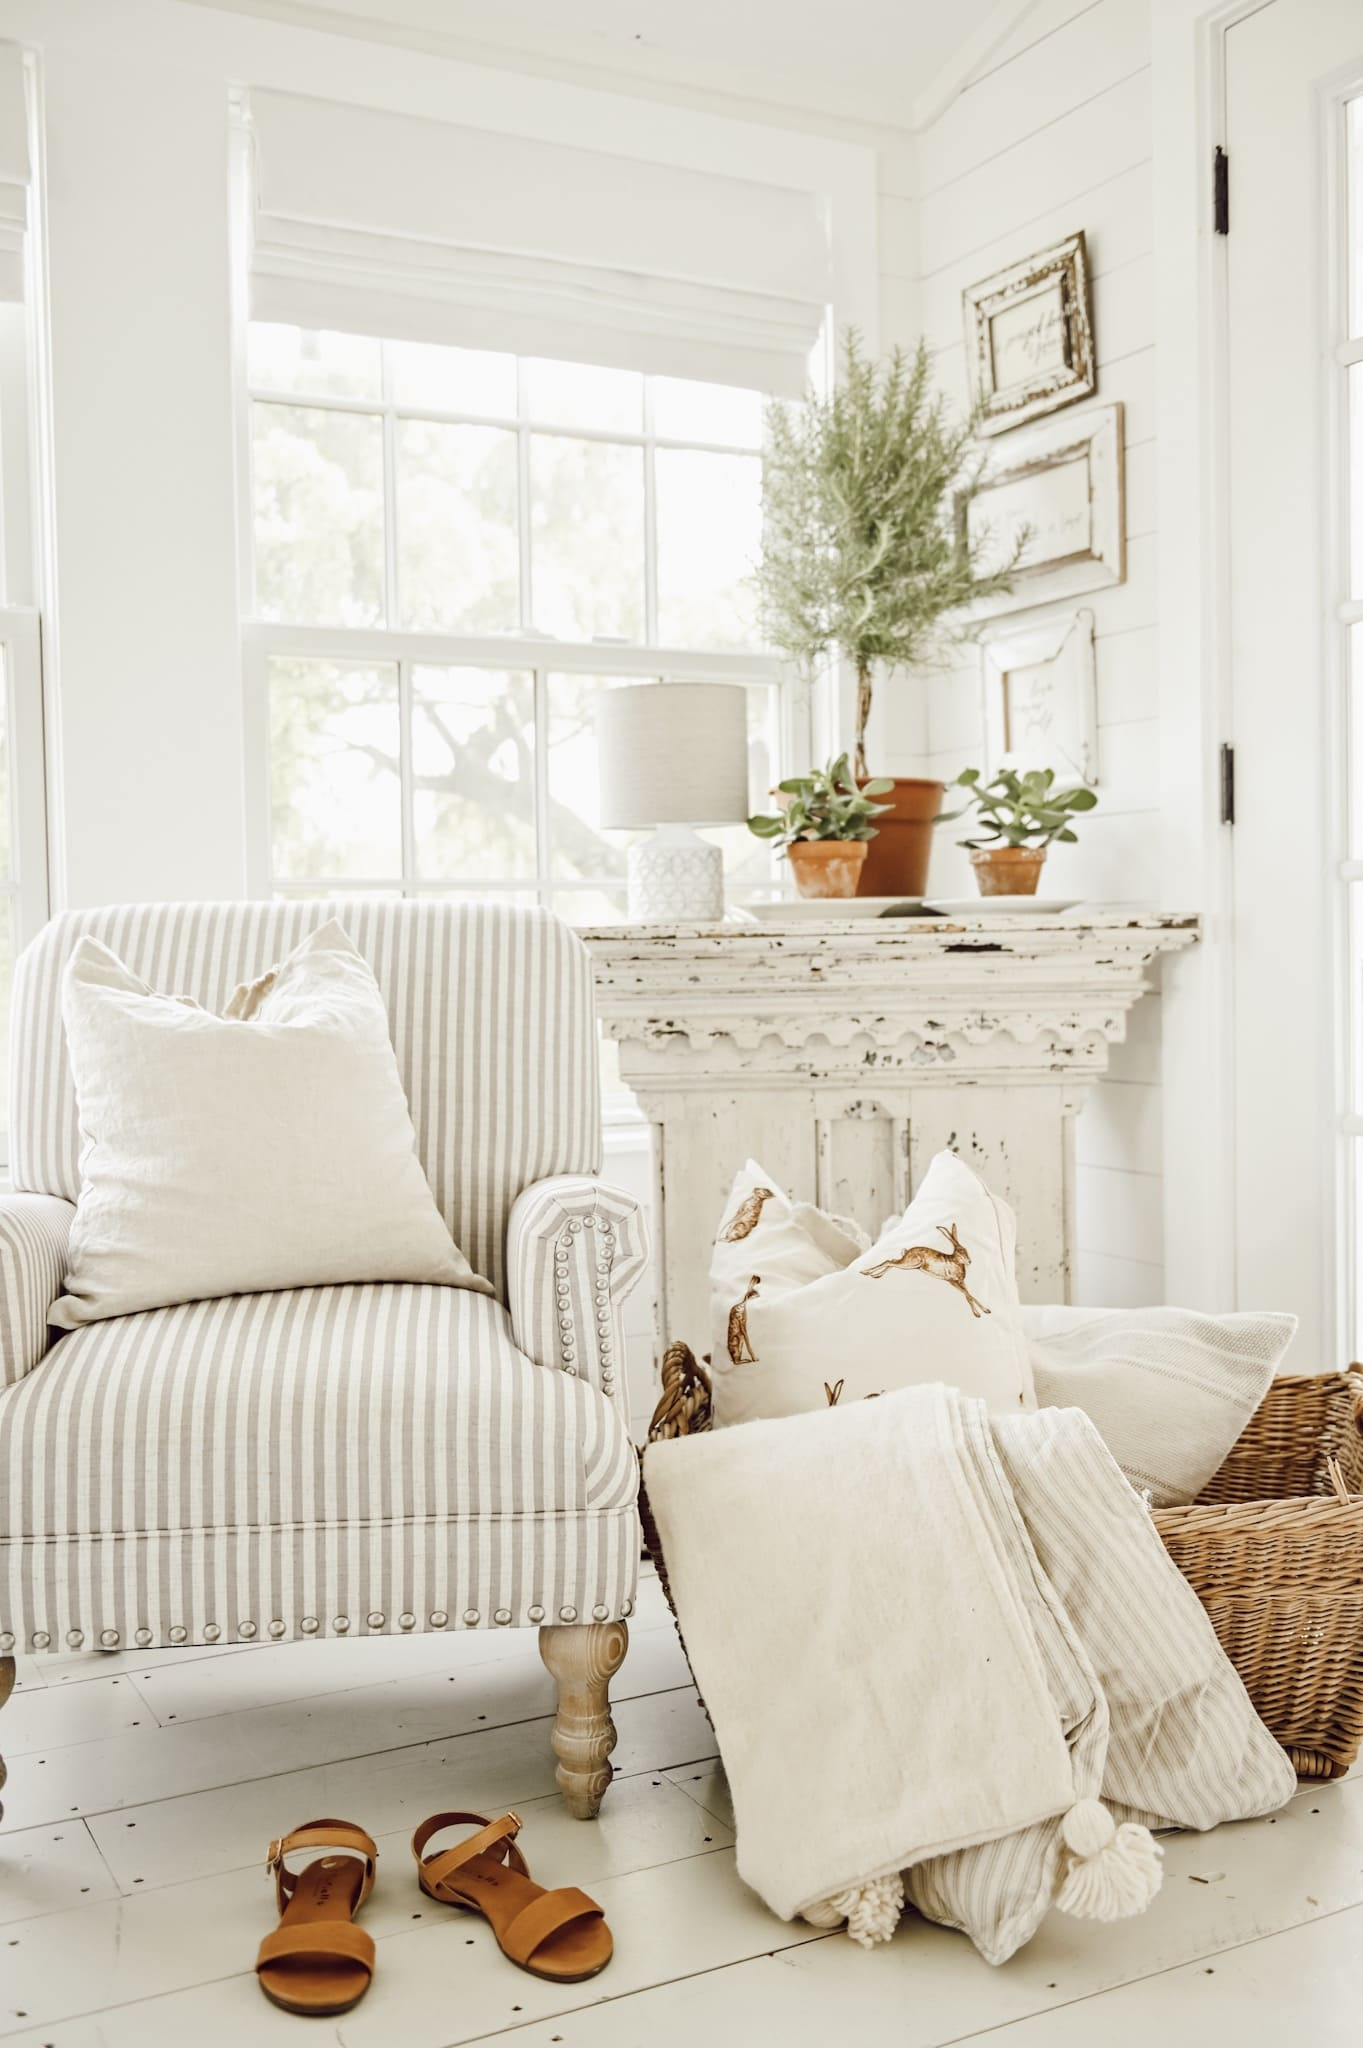 If you have some white space, fill it with a basket with cozy throws and pillows in it for your guests.